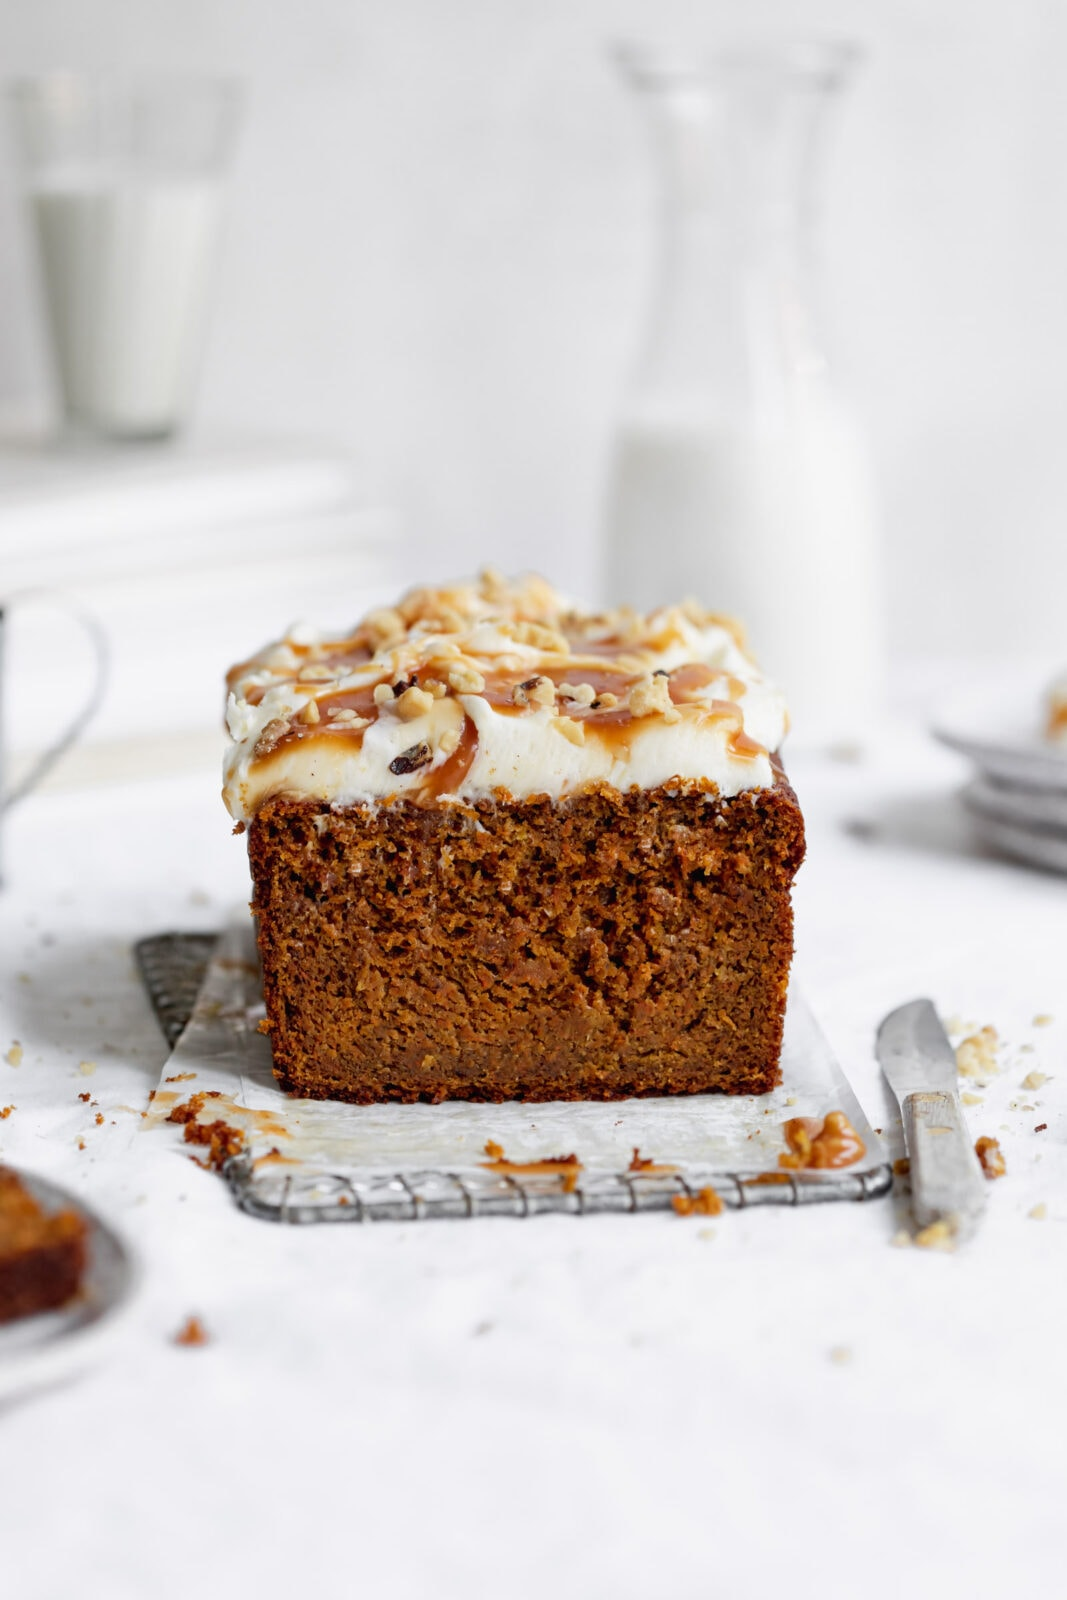 whole wheat carrot cake loaf with cream cheese frosting, caramel and walnuts